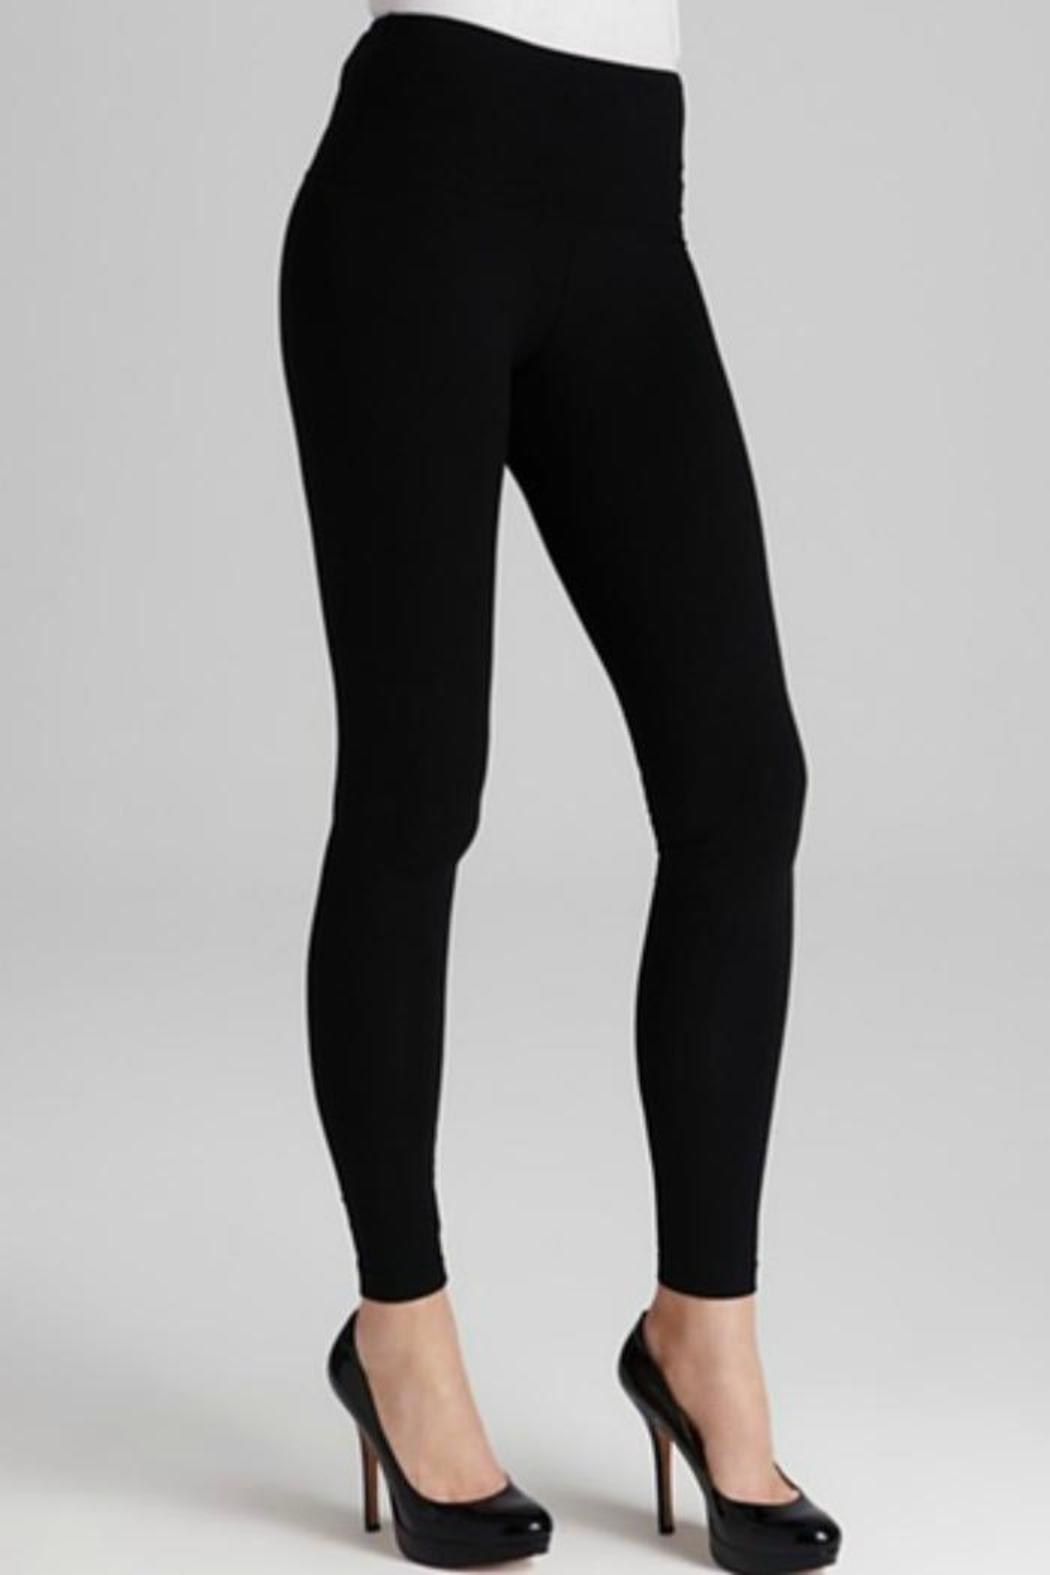 Cheryl Creations Solid Black Legging from New York City by ...